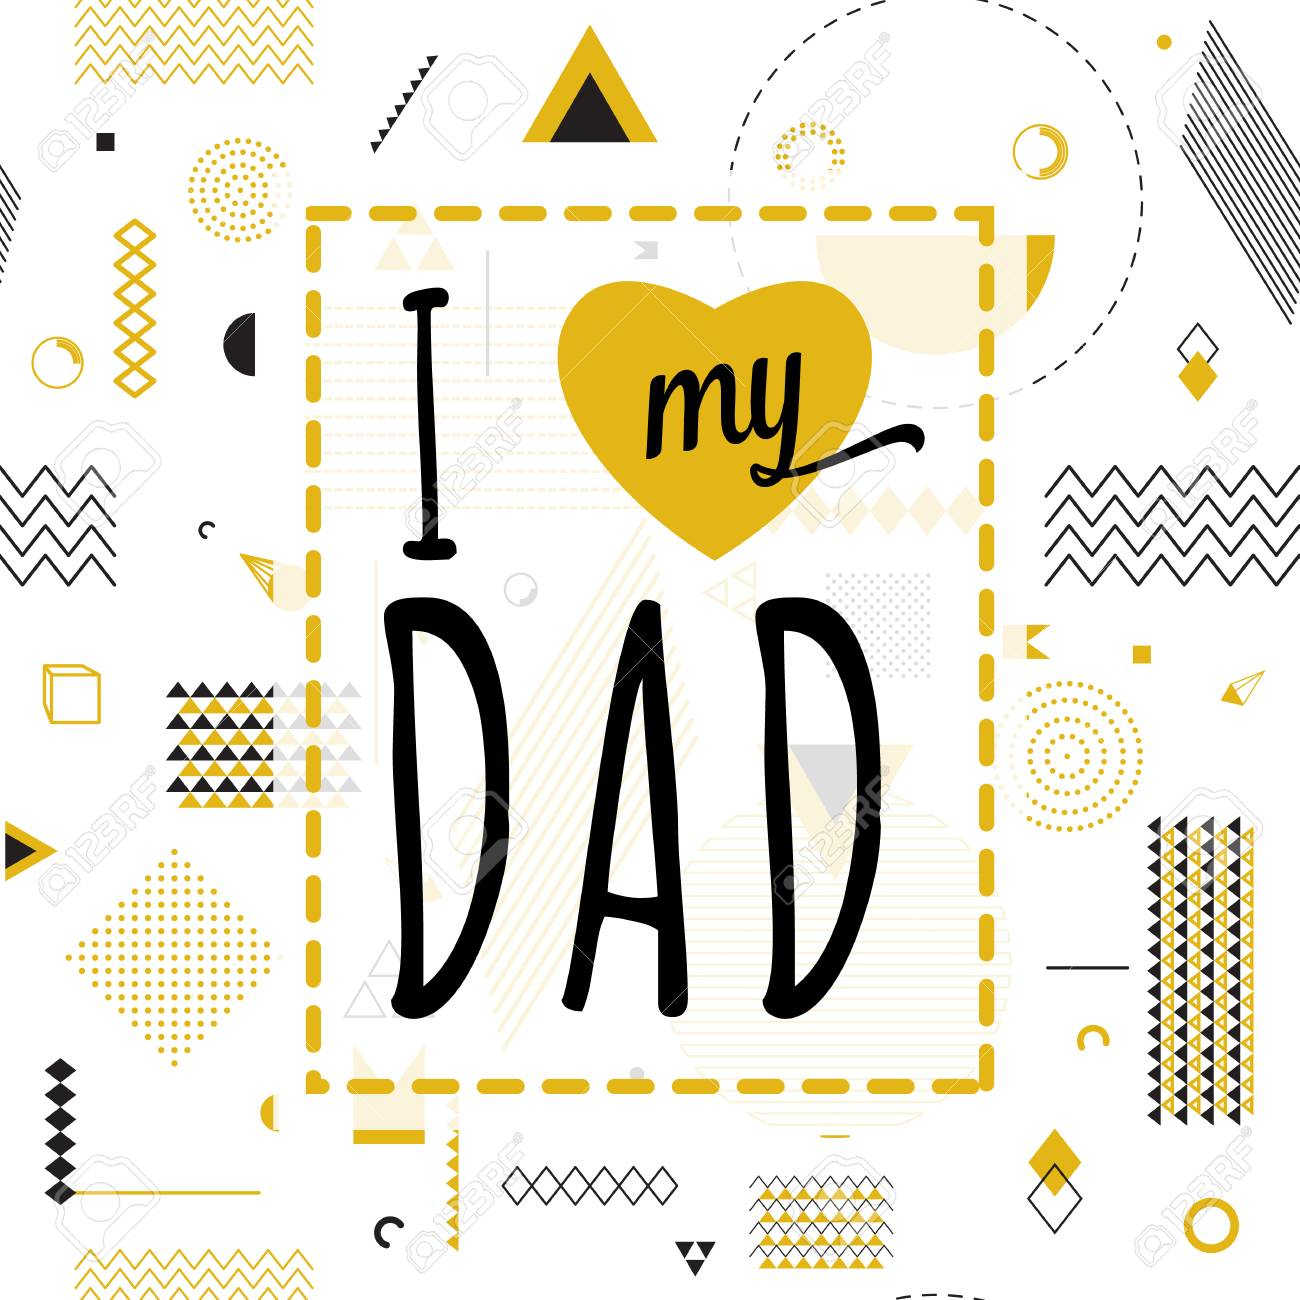 happy fathers day wishes design vector background on seamless